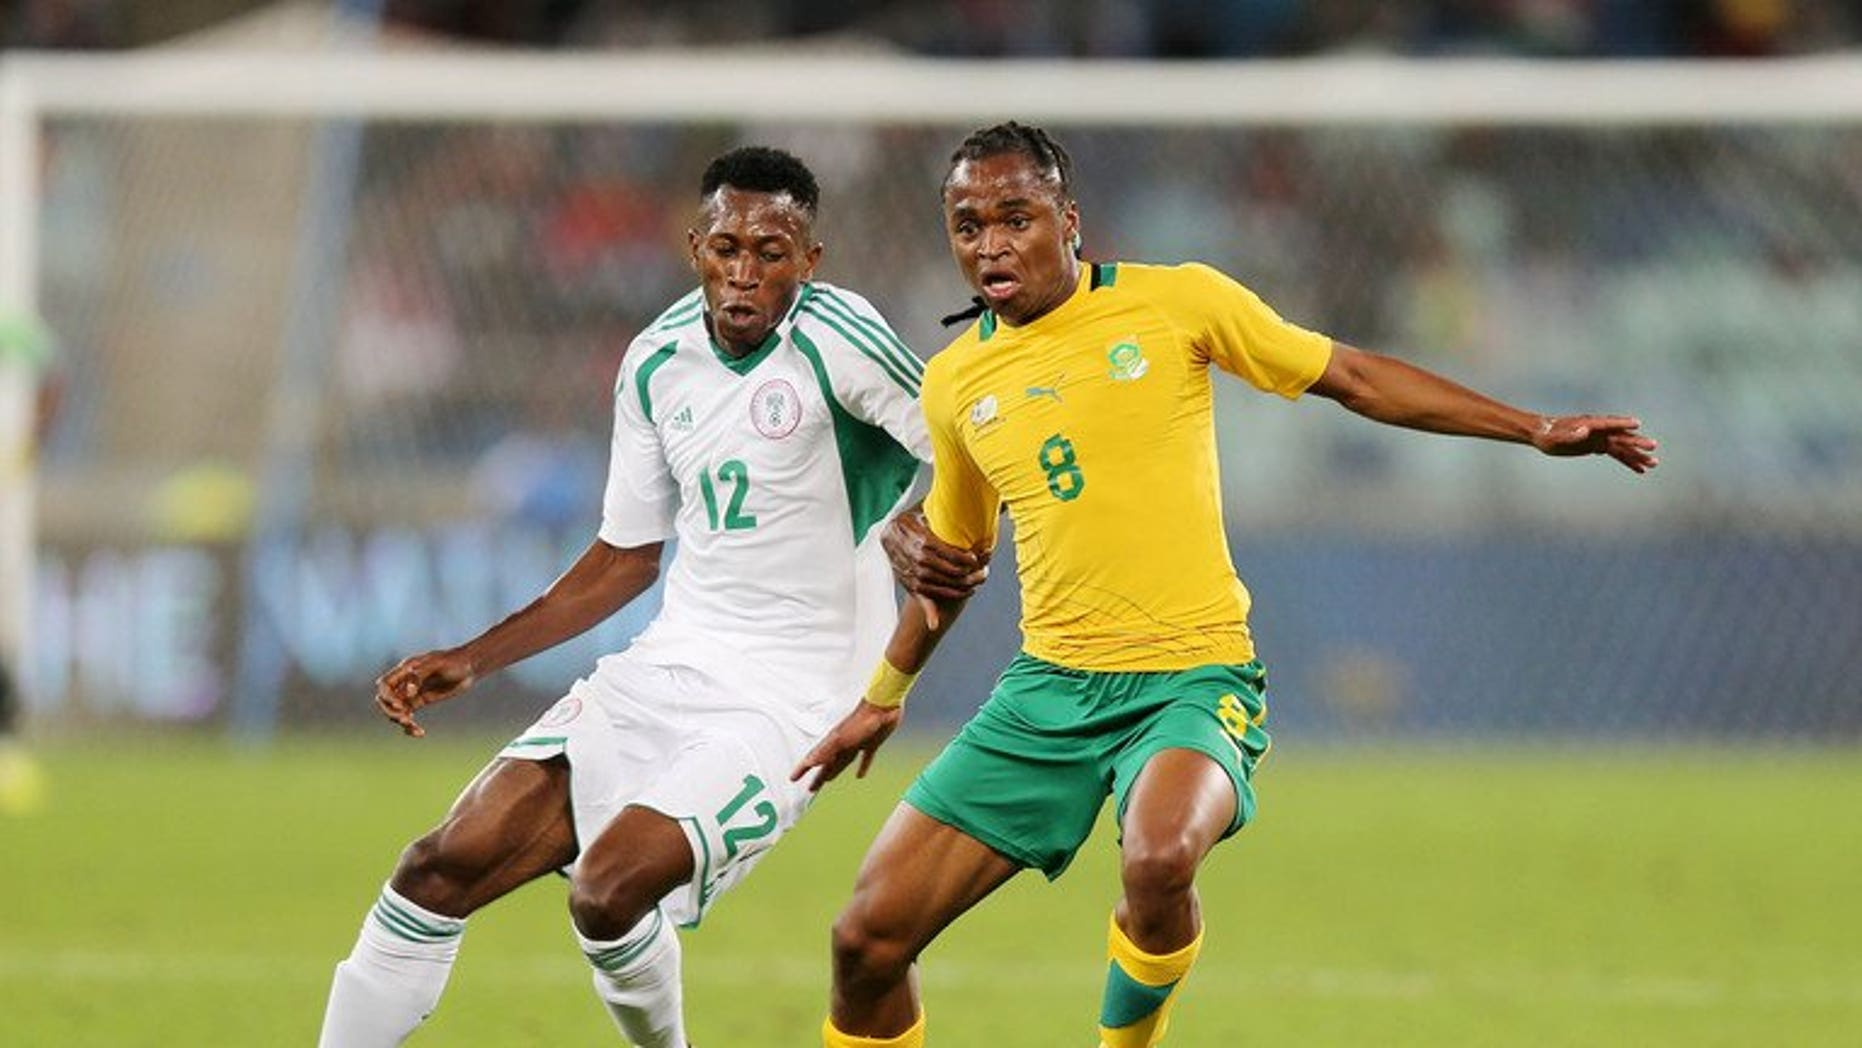 Nigeria's Namdi Ouduamadi challenges Siphiwe Tsabalala of South Africa in a friendly in Durban last month. Major rivals South Africa and Nigeria were drawn together on Wednesday in the first round of the 2014 African Nations Championship (CHAN).